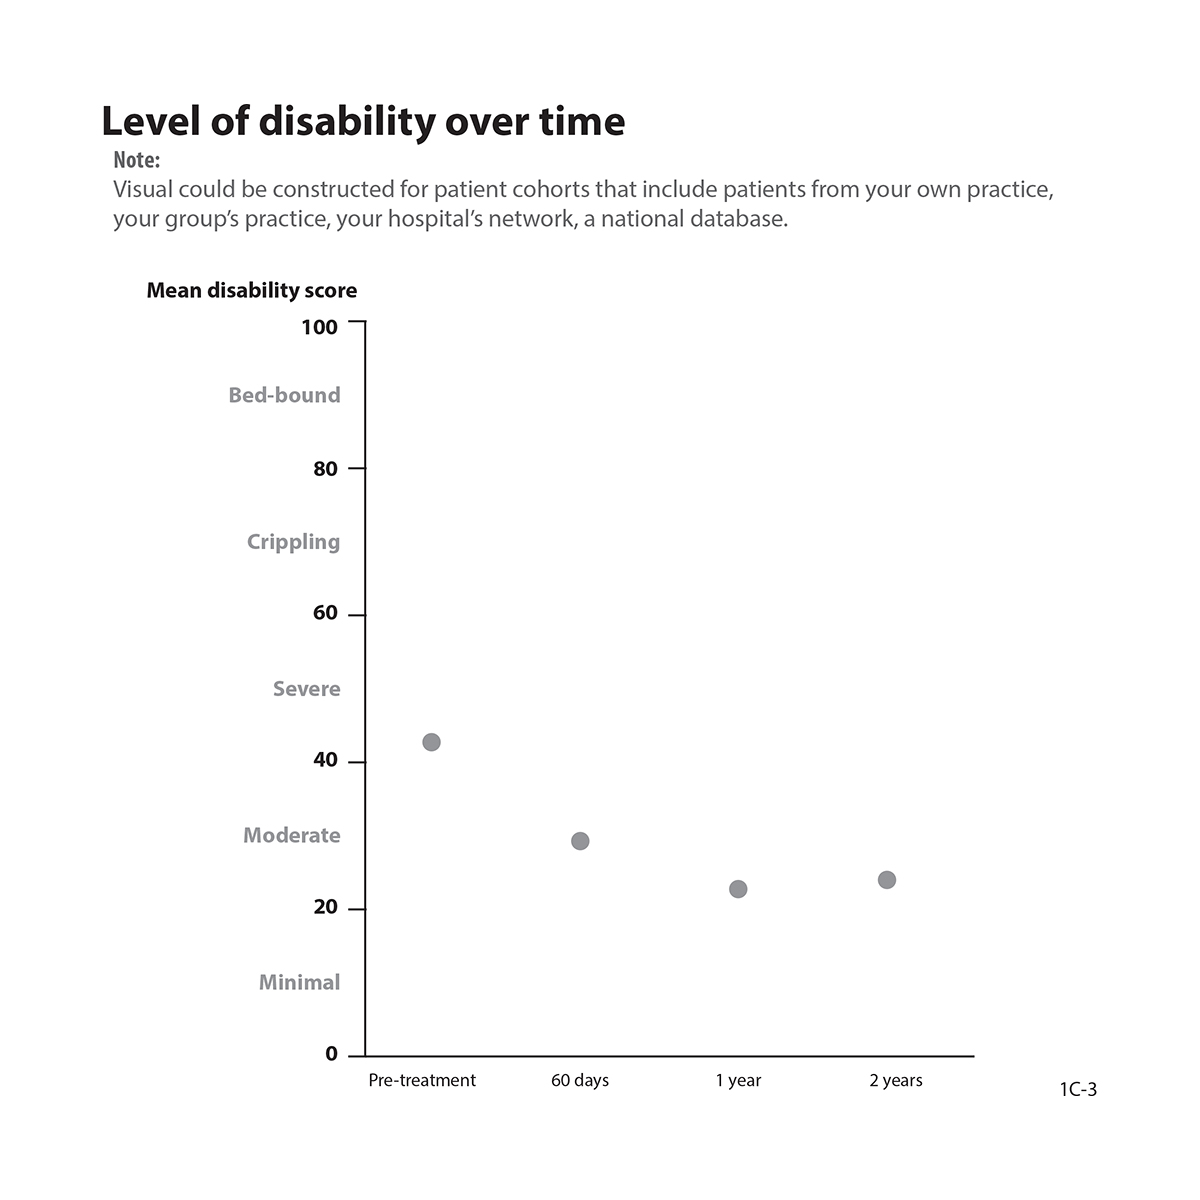 Graph showing level of disability pre- and post-treatment showing score at particular points in time (no connecting lines).